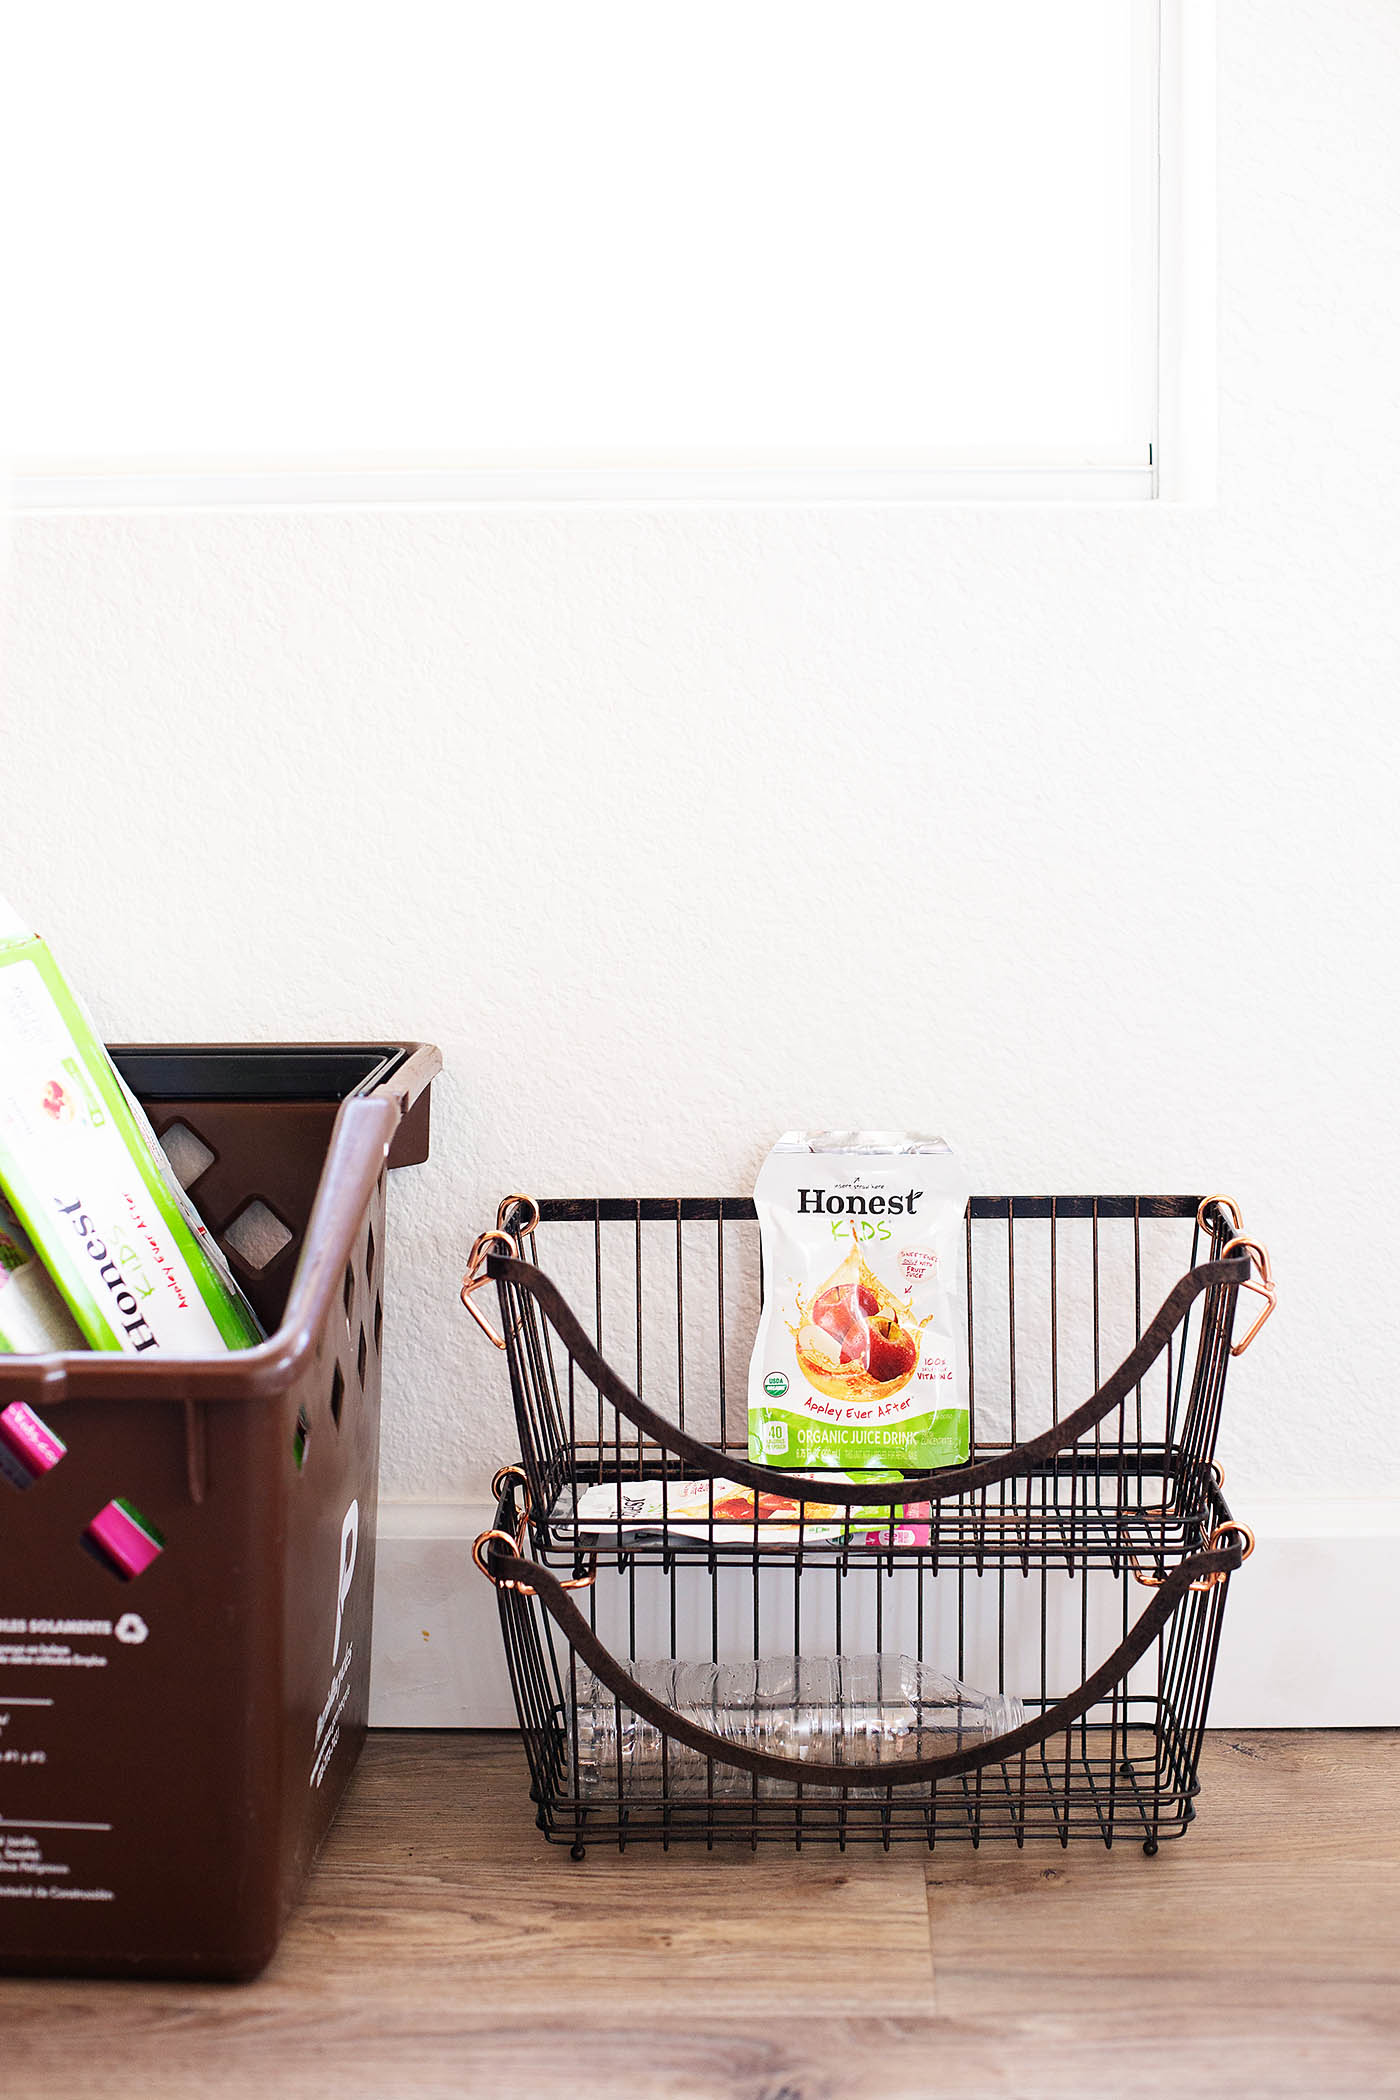 Tips for making recycling a habit with kids